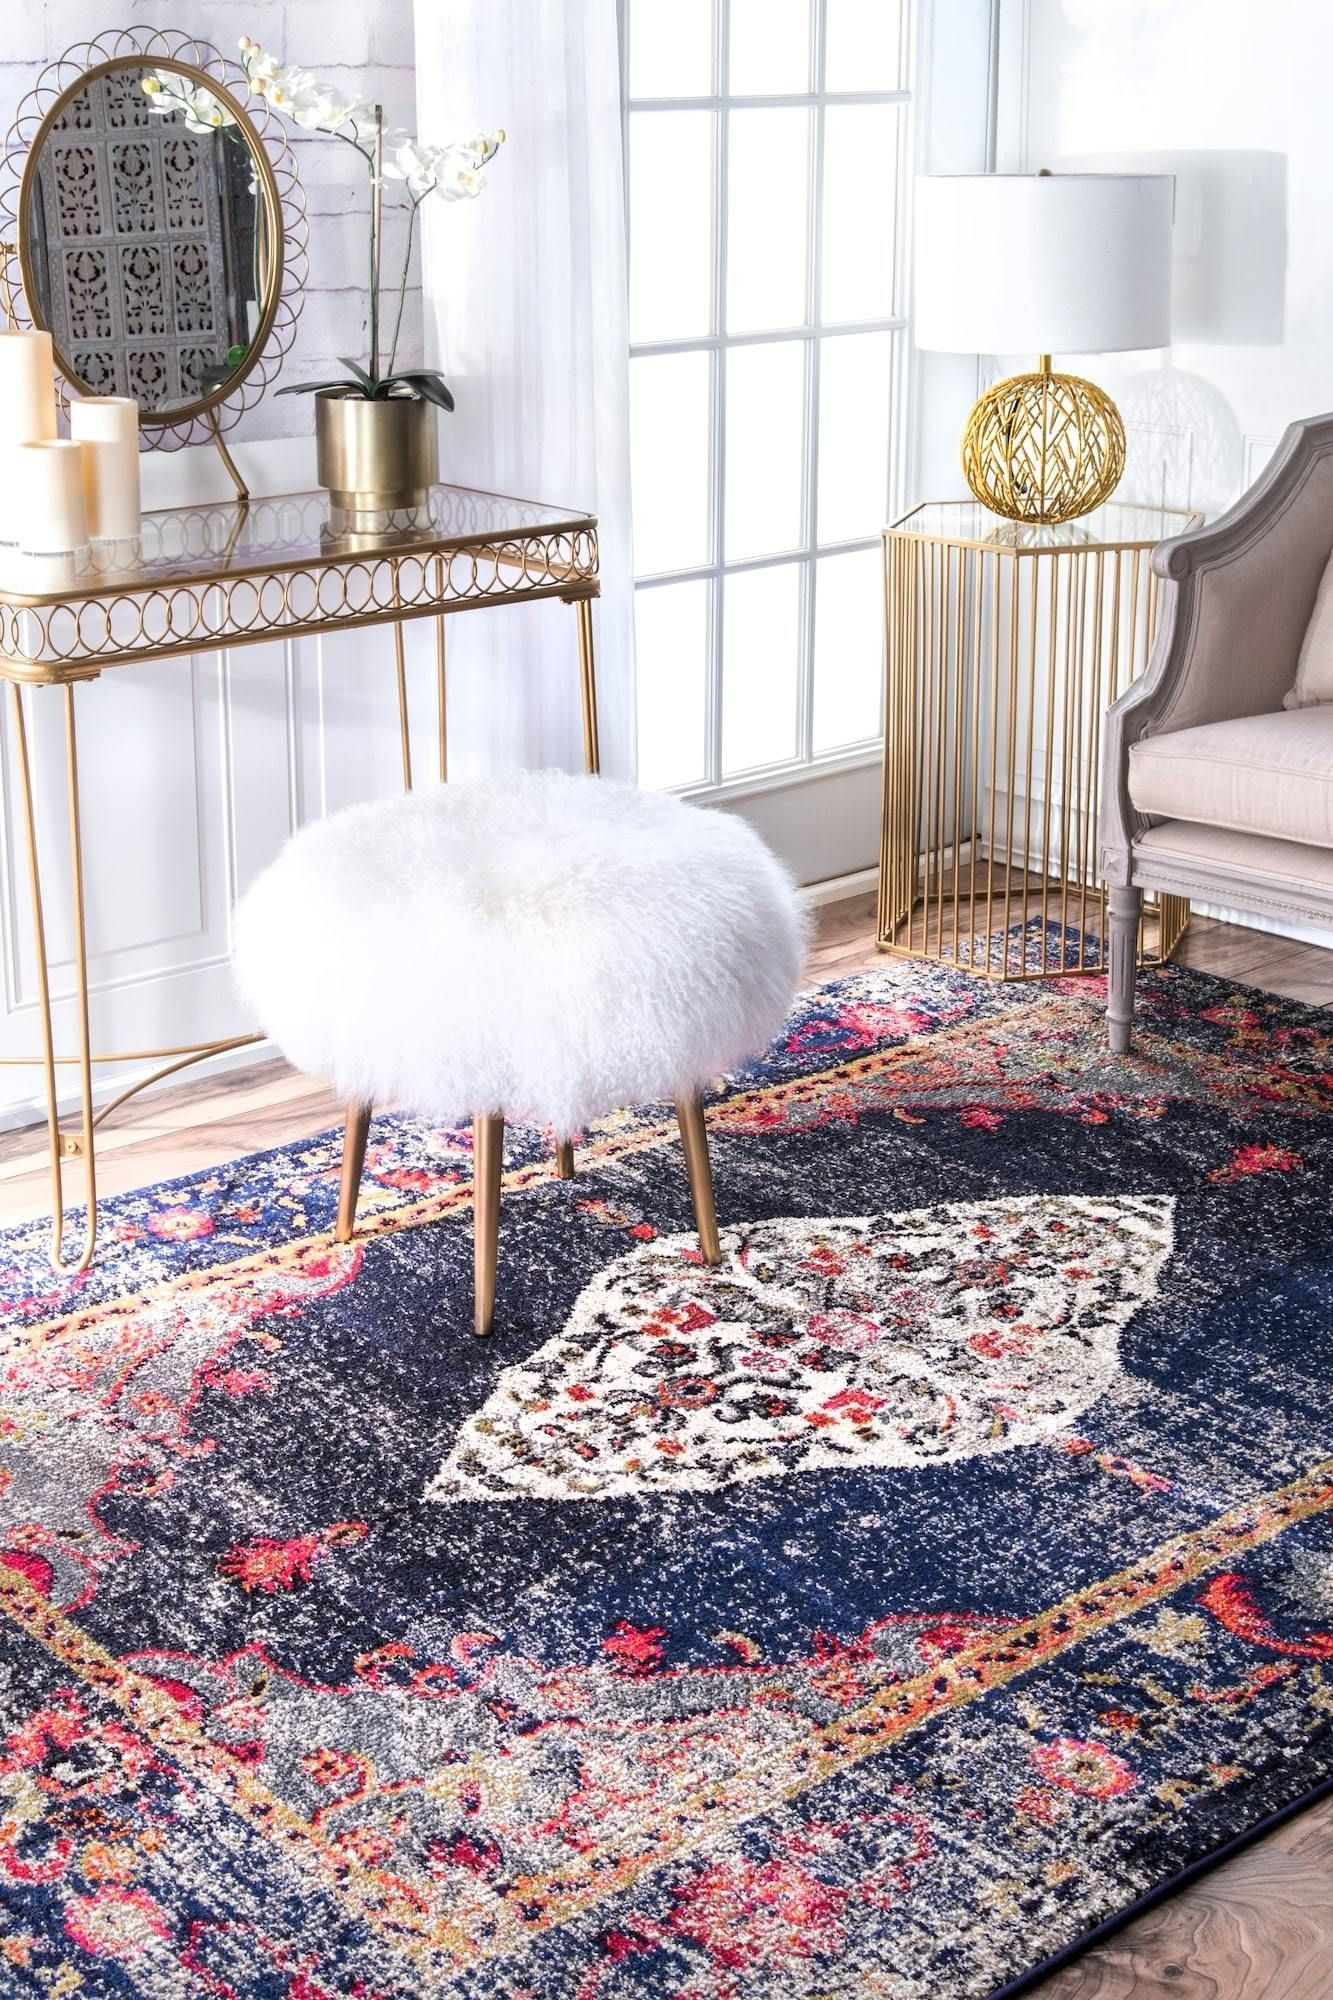 Cheap Hardwood Flooring Ideas Of Best area Rugs for Hardwood Floors Lovely area Rugs for Hardwood Pertaining to Best area Rugs for Hardwood Floors Lovely Floor Lovely Floor Rugs Ideas Floor Rugs Awesome Bedroom